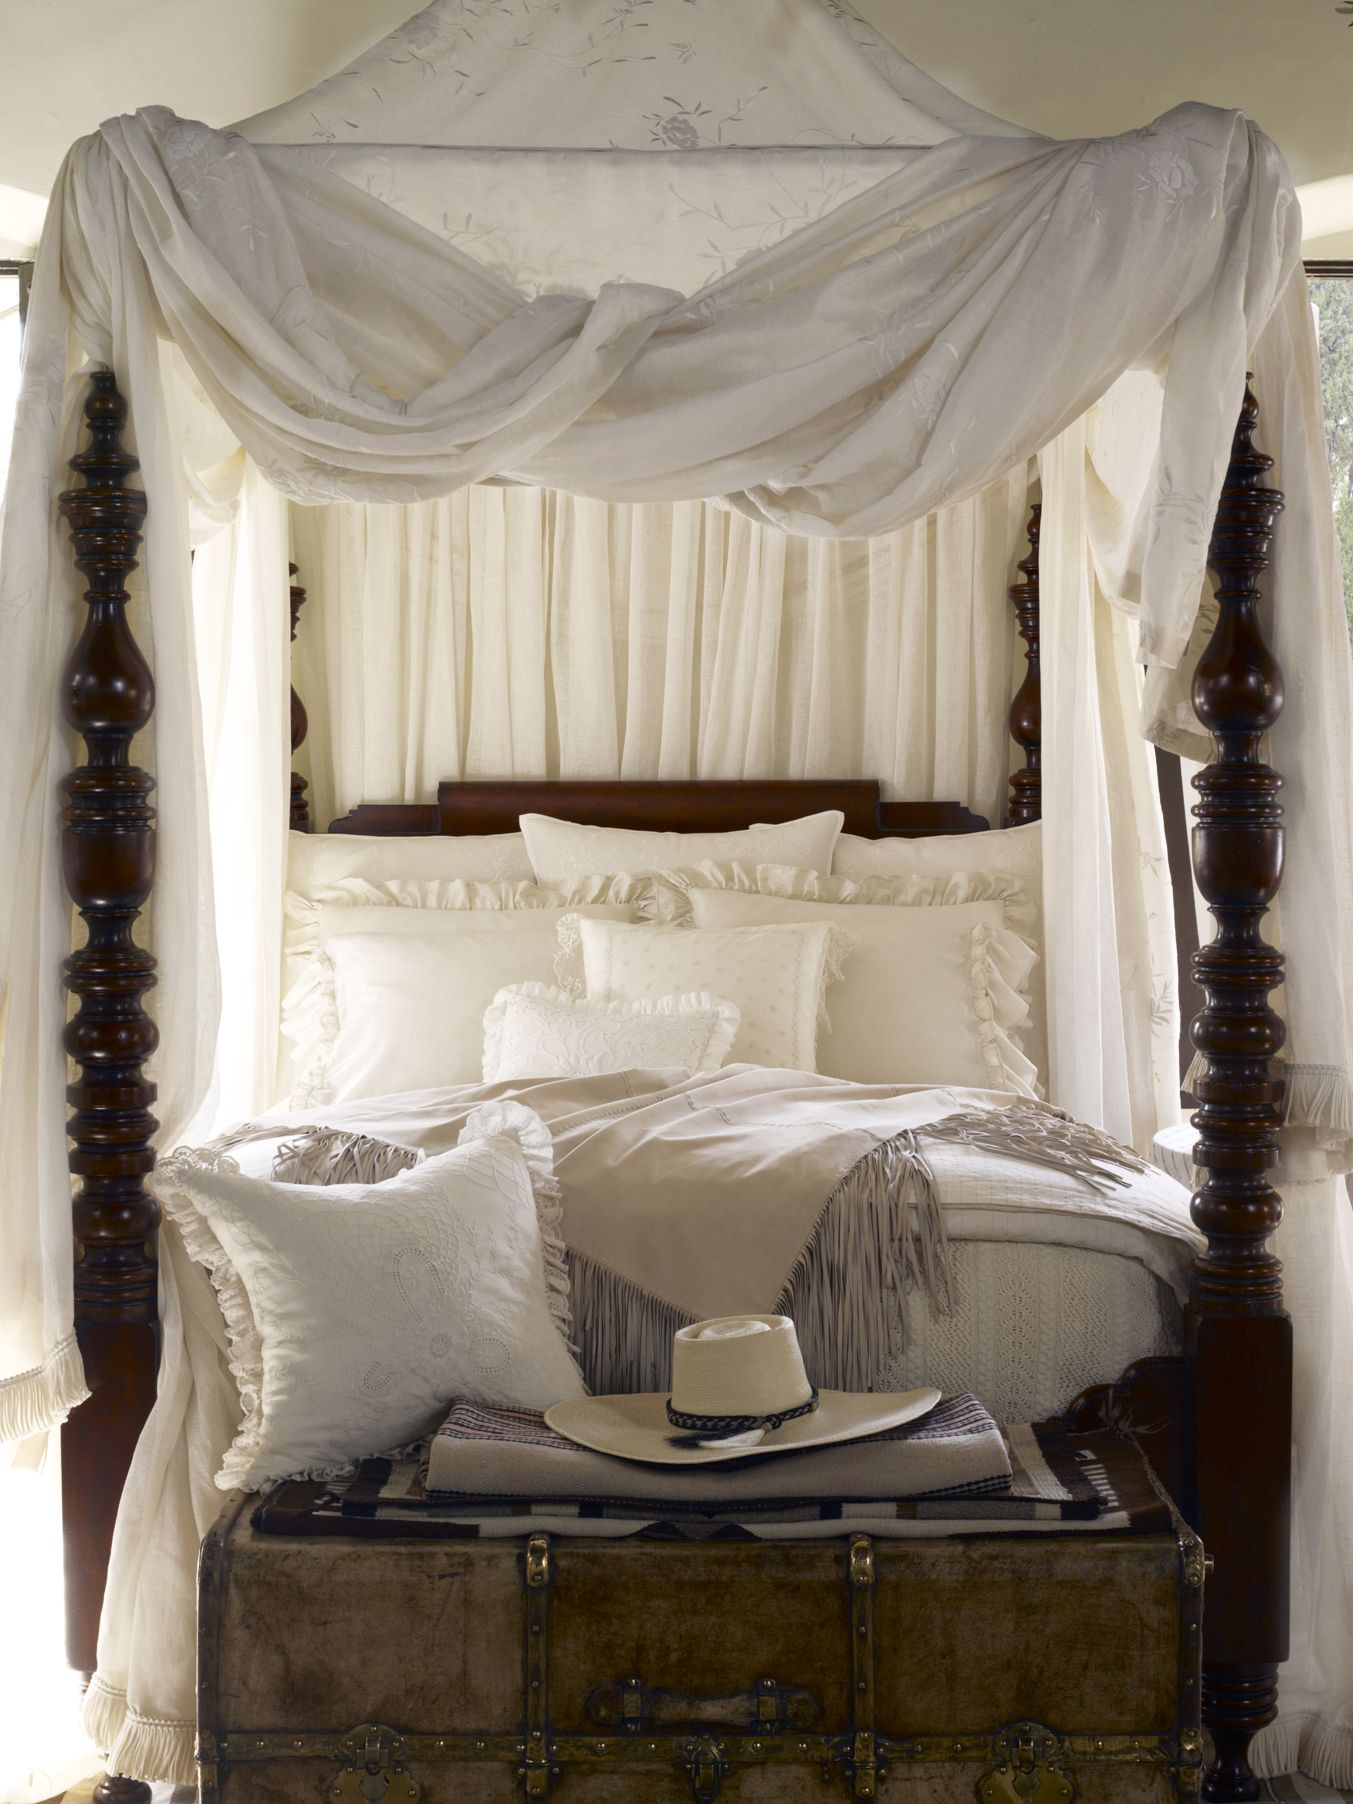 Romantic Four Post Canopy Bed From Ralph Lauren Home Chic